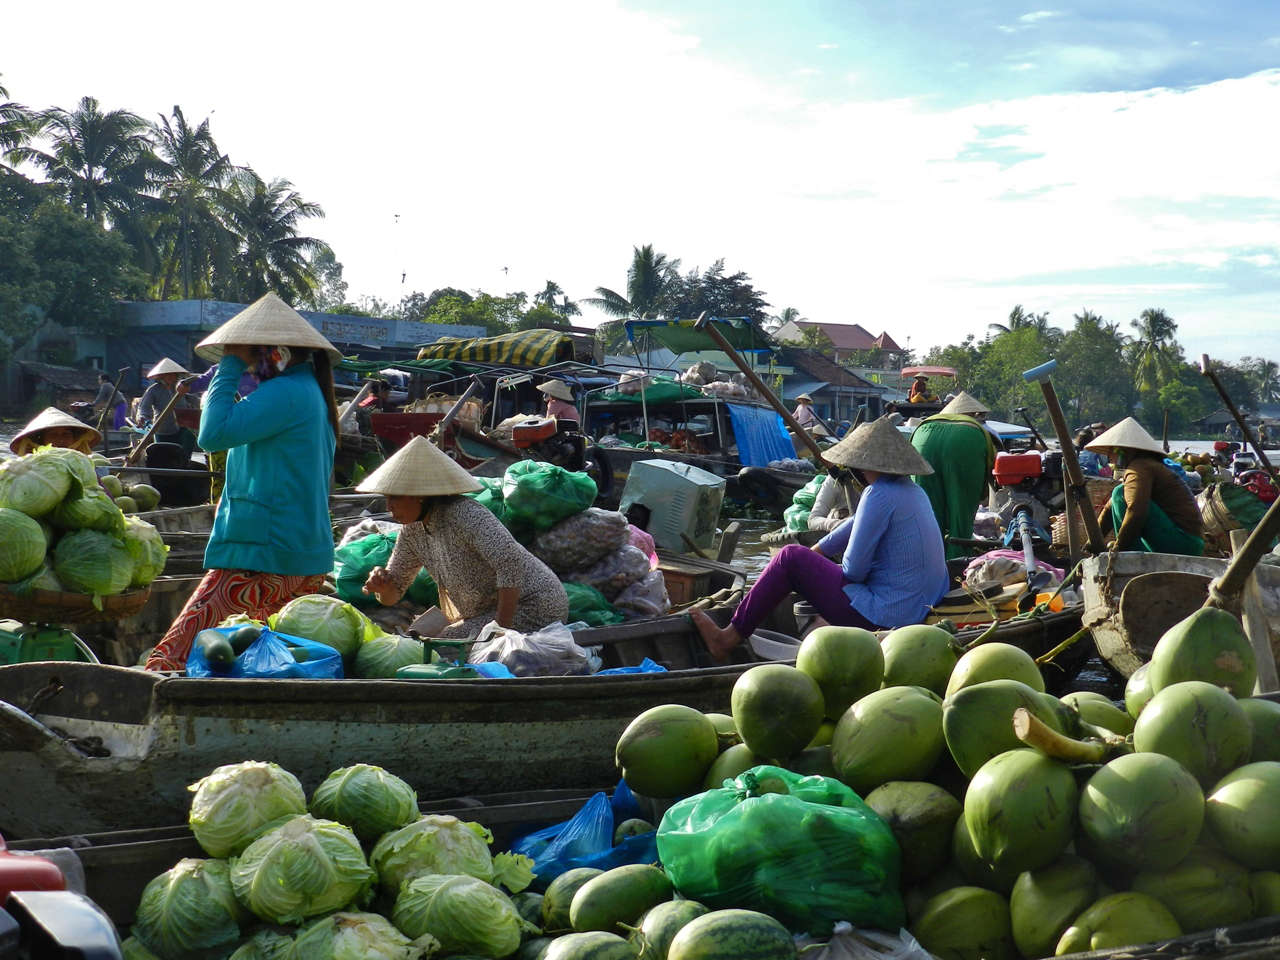 It's easy to lose track at Phong Dien Market